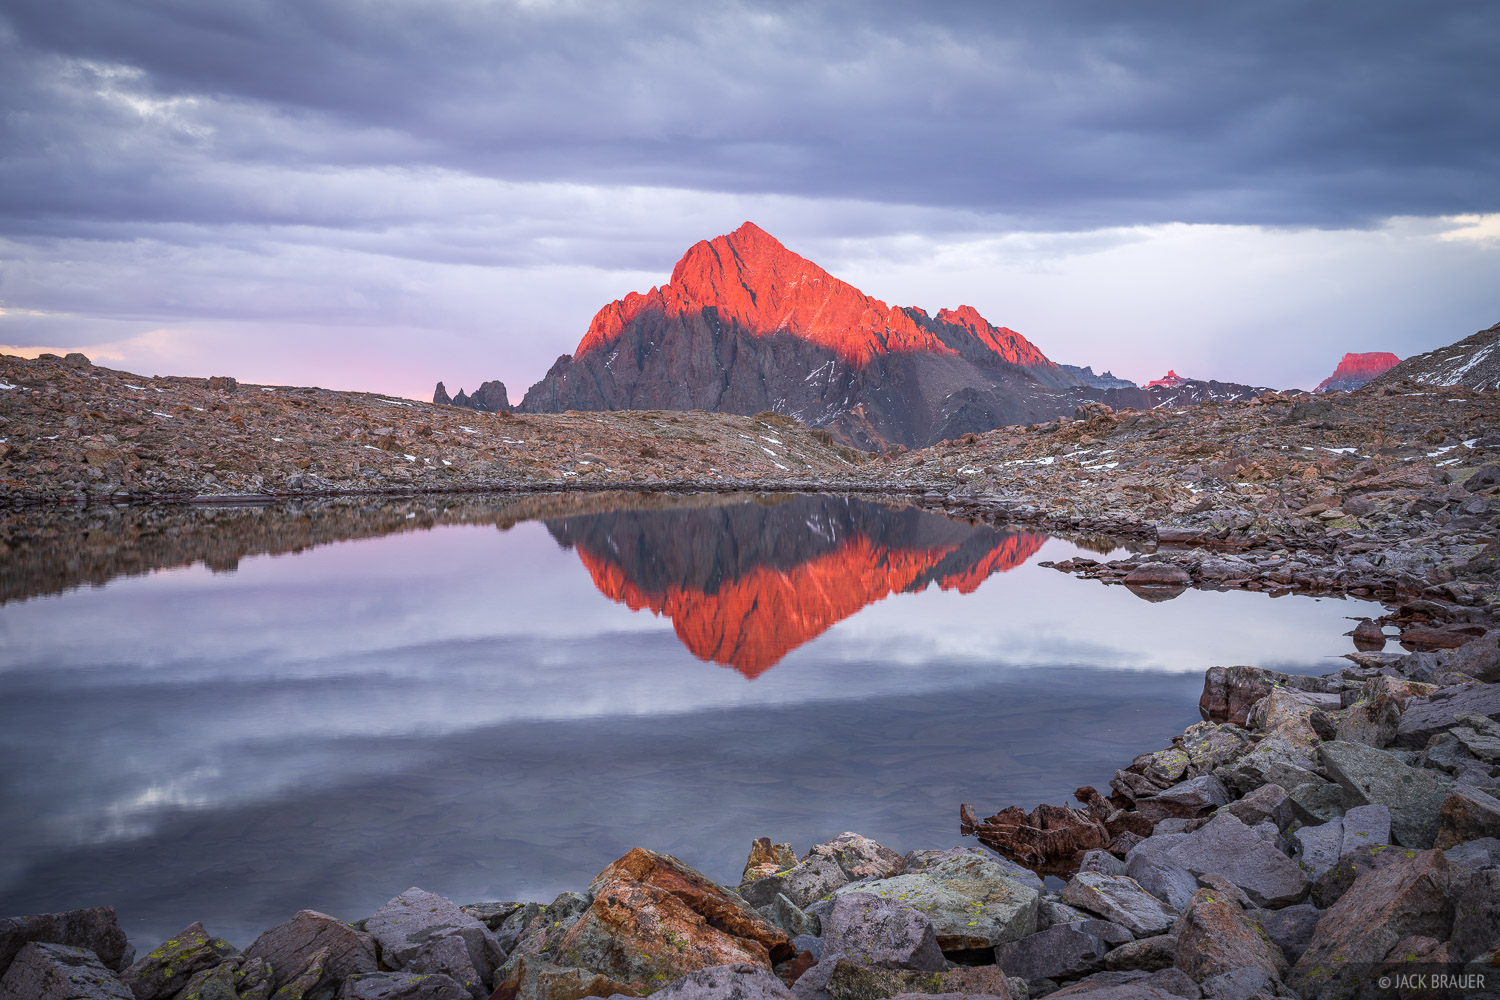 The last light of sunset pops through under the clouds, illuminating the summit of Mount Sneffels (14,150 ft).